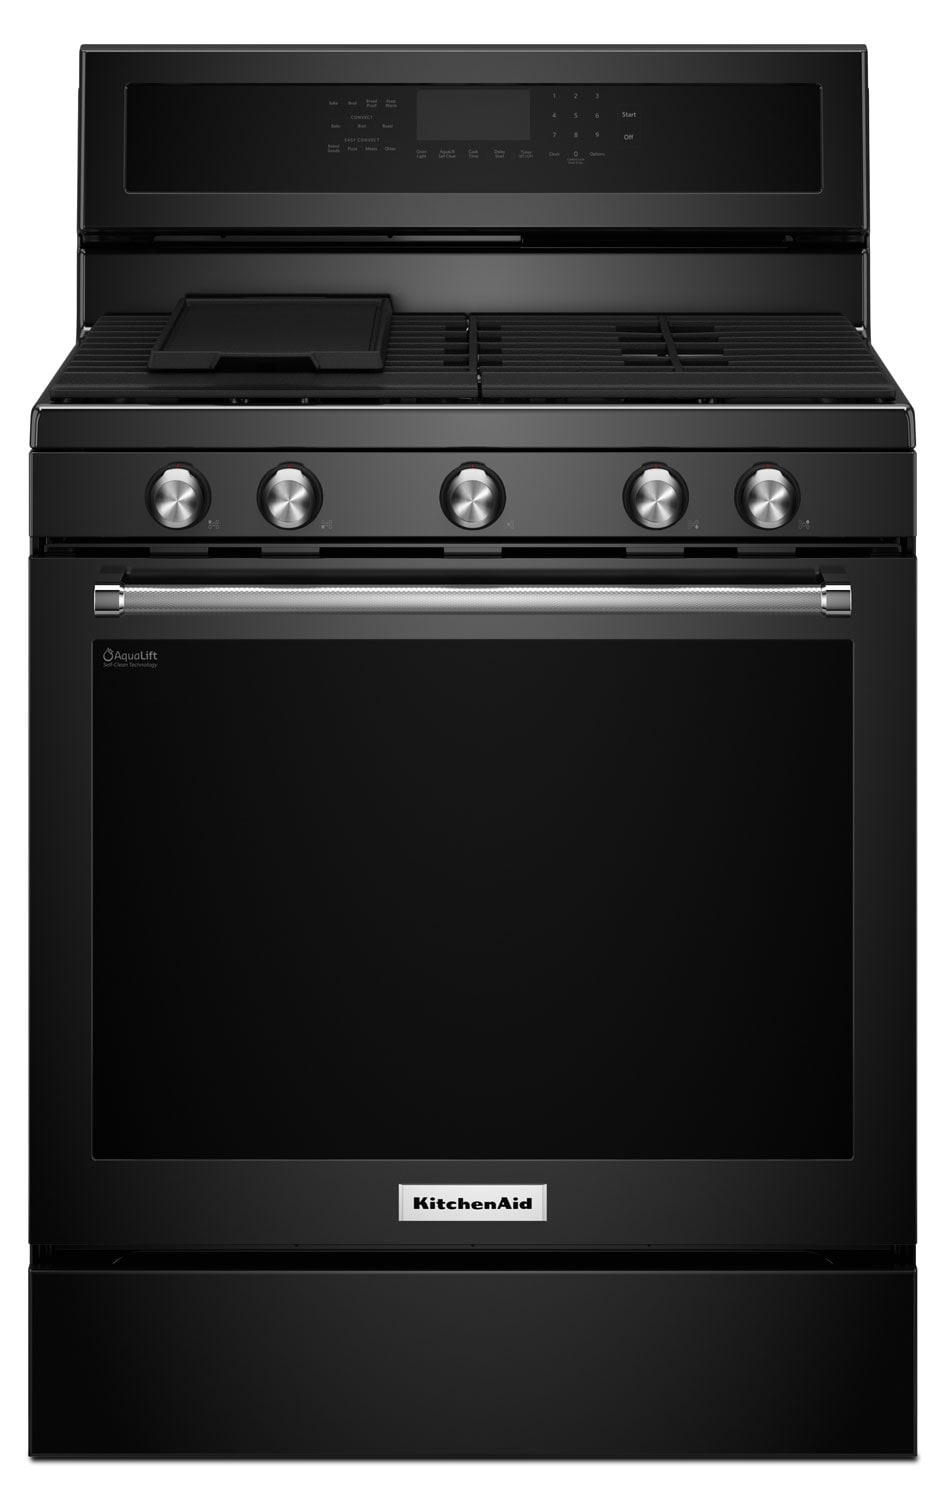 Cooking Products - KitchenAid Black Freestanding Gas Range (5.8 Cu. Ft.) - KFGG500EBL